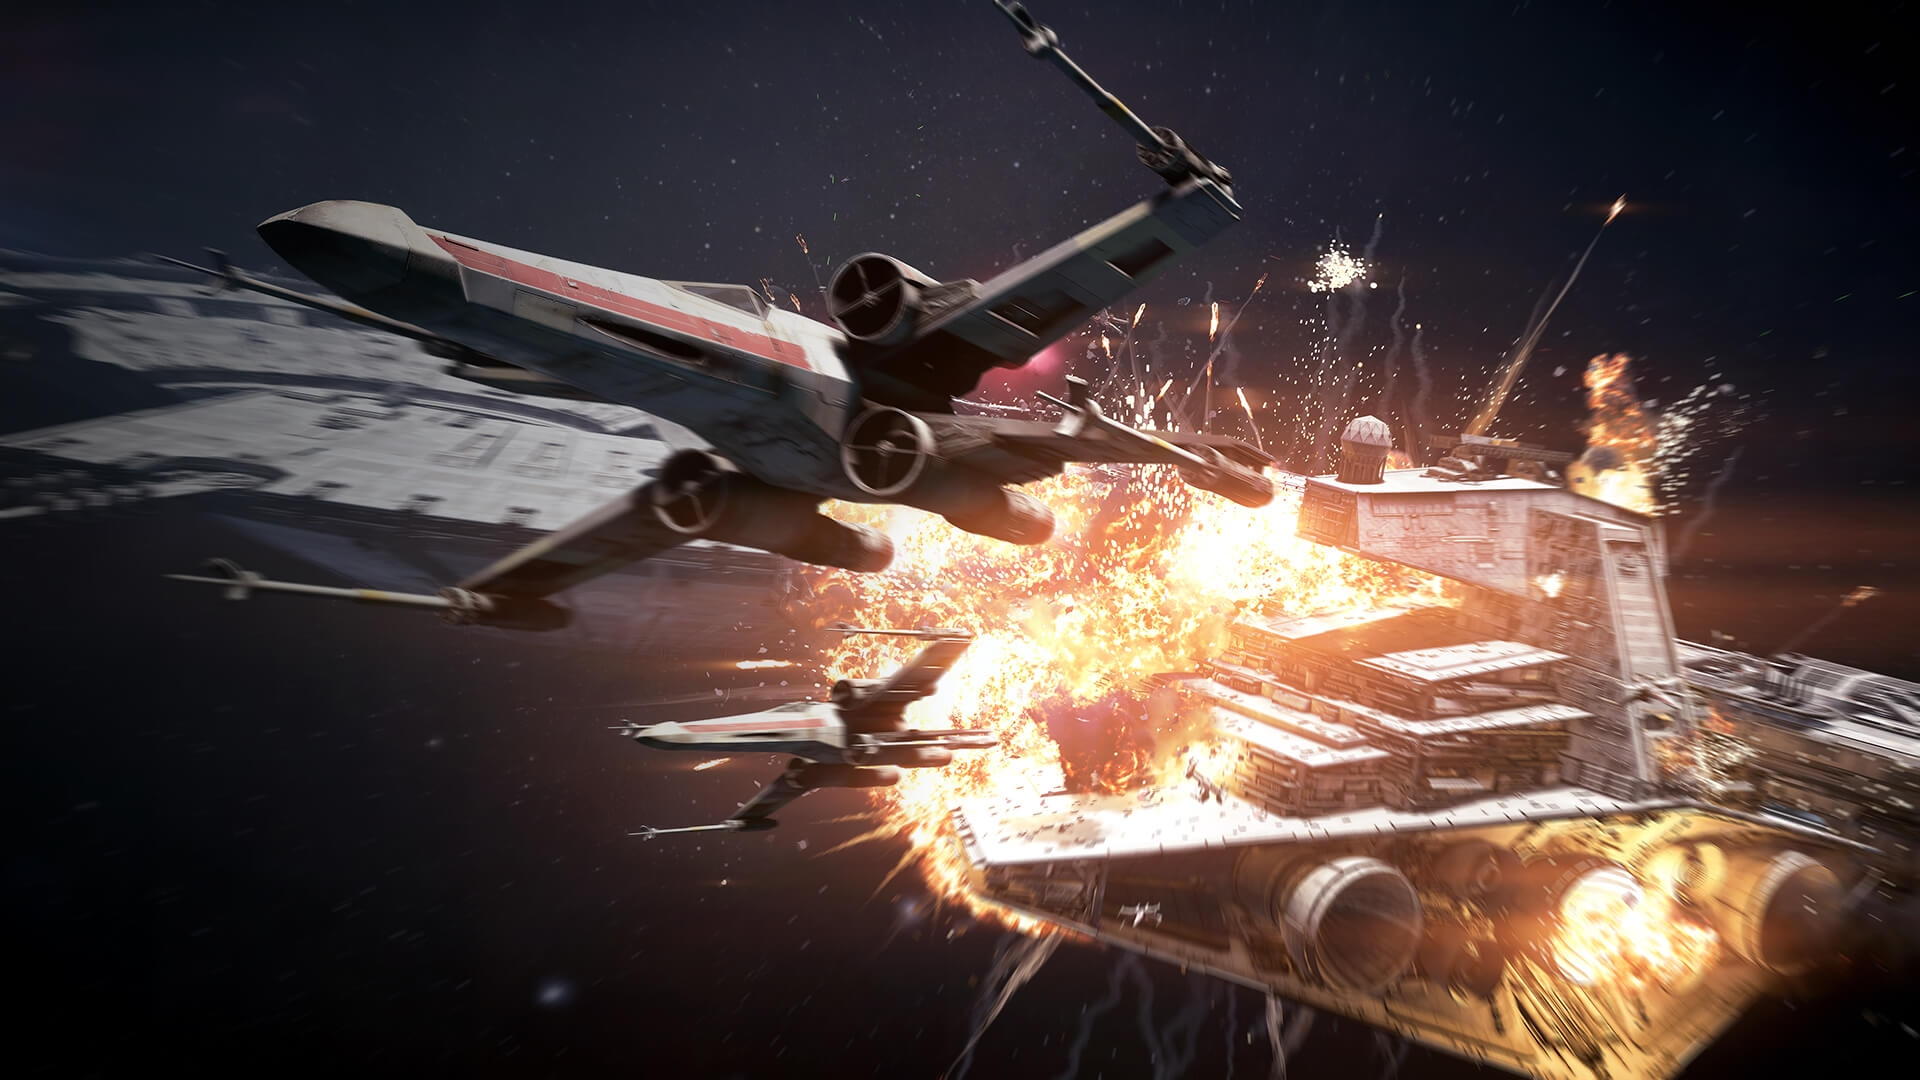 Star Wars: Battlefront 2 beta – start time, modes, PC specs, challenges and everything else you need to know